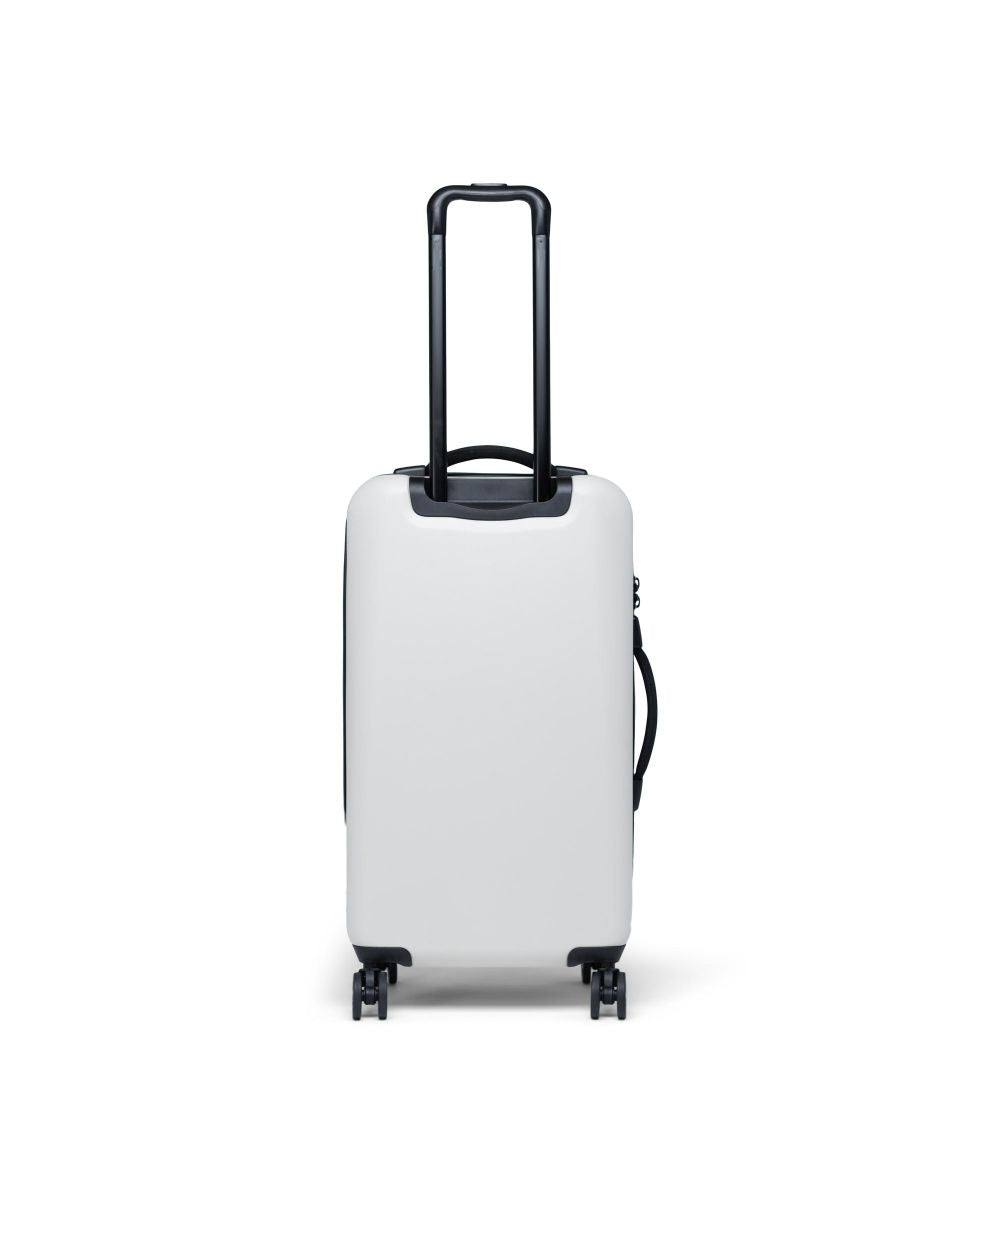 TRADE LUGGAGE MEDIUM - ASH ROSE/SILVERBIRCH